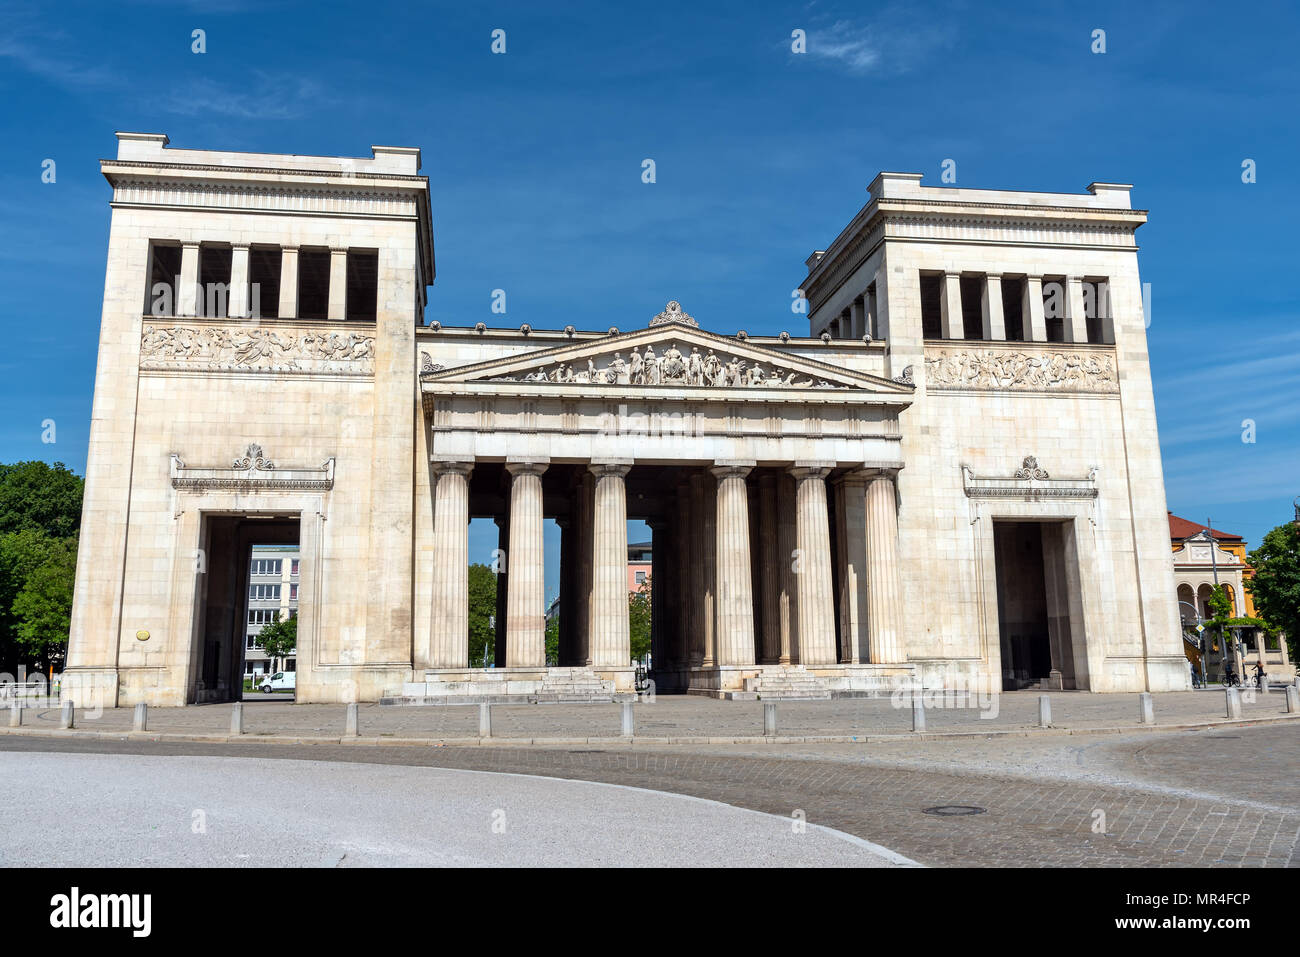 The Propylaea at the Koenigsplatz in Munich on a sunny day - Stock Image